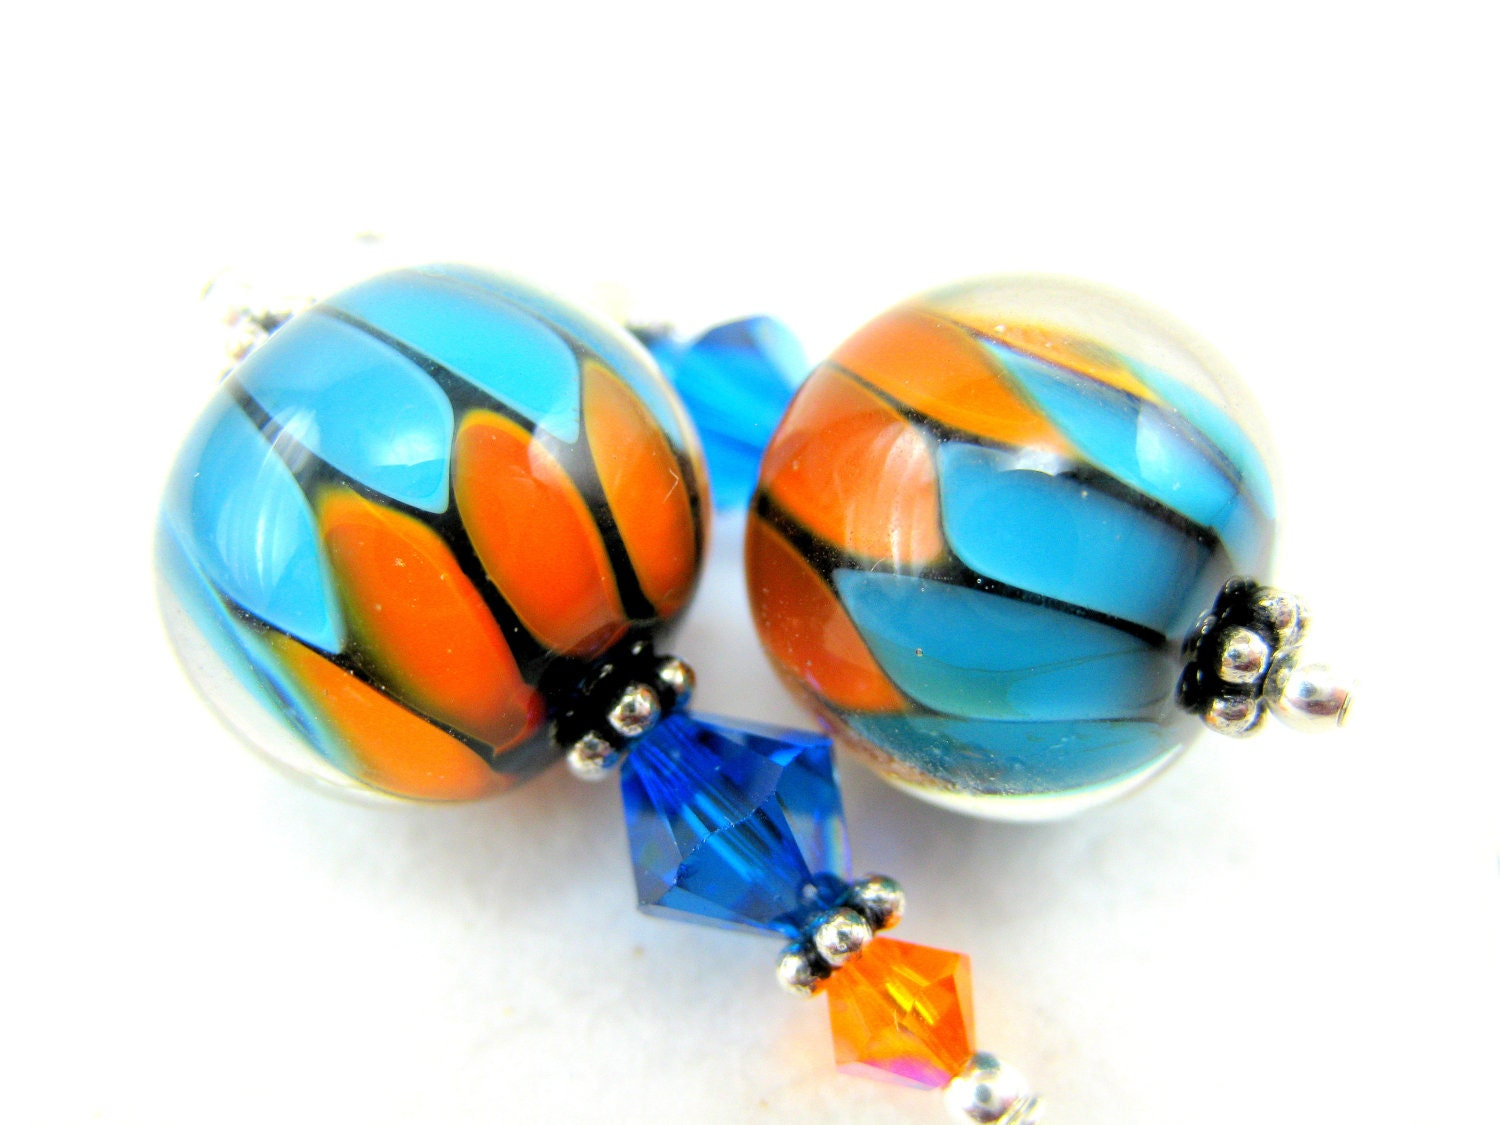 Orange and Turquoise Earrings, Glass Bead Earrings, Blue Orange Lampwork Earrings, Bright Color Earrings - Electric Avenue - GlassRiverJewelry